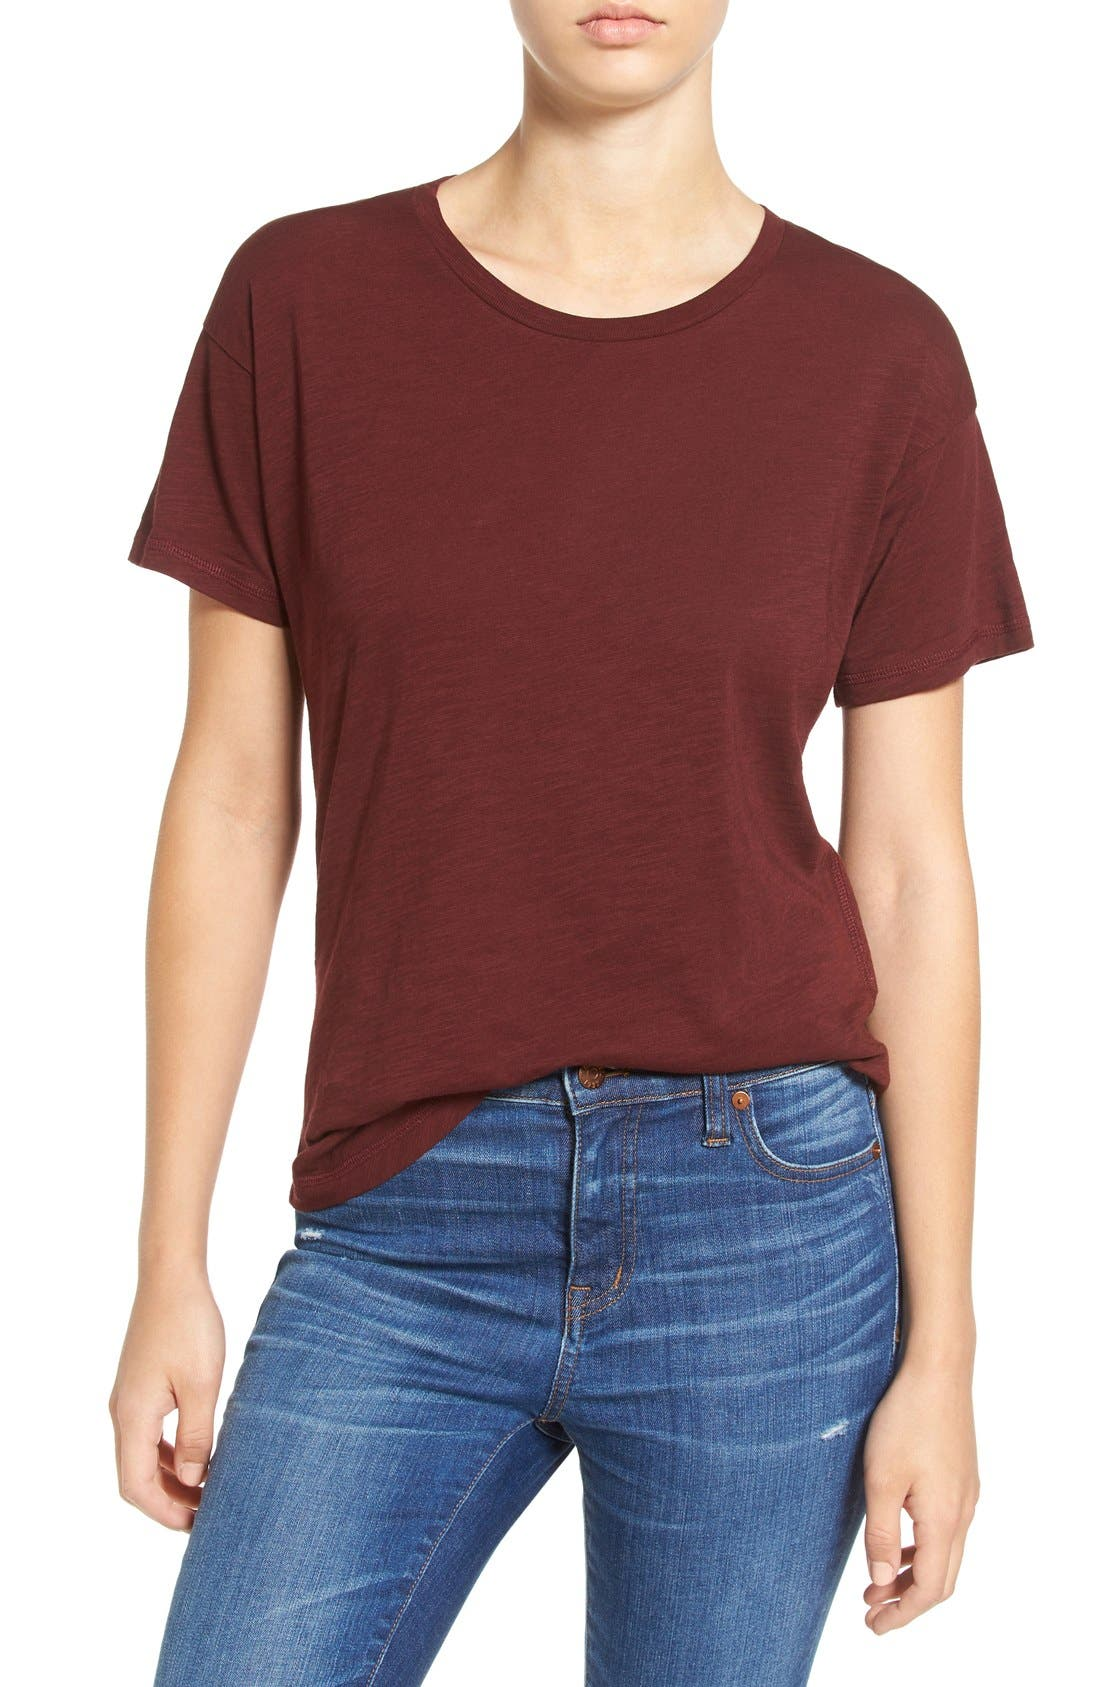 Main Image - Madewell 'Whisper' Cotton Crewneck Tee